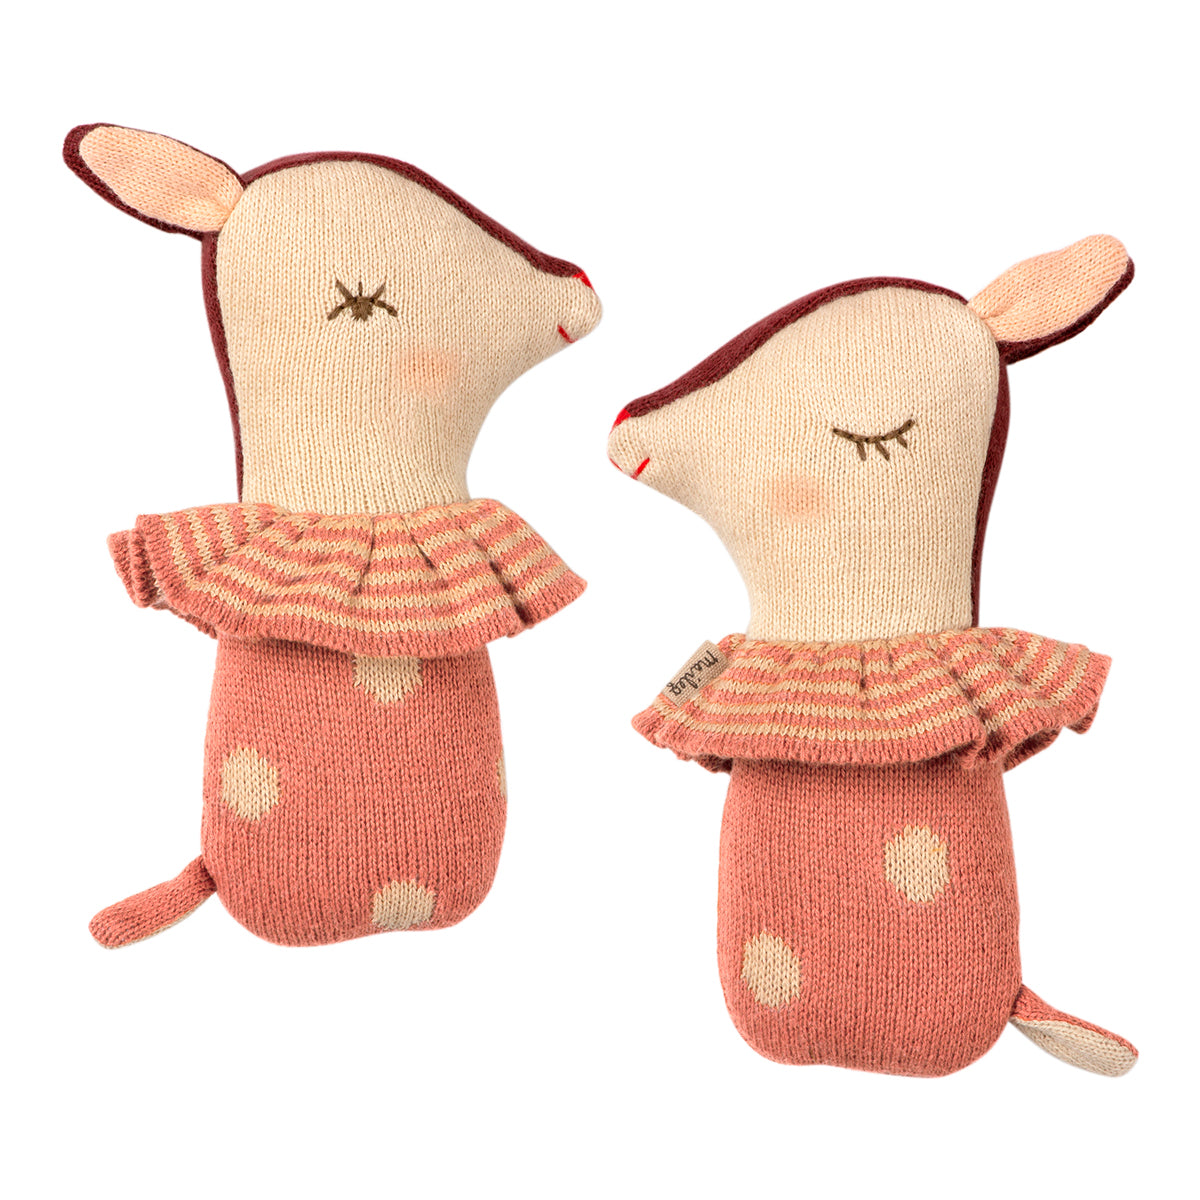 Bambi Rattle Rose Maileg knitted toy baby rattle